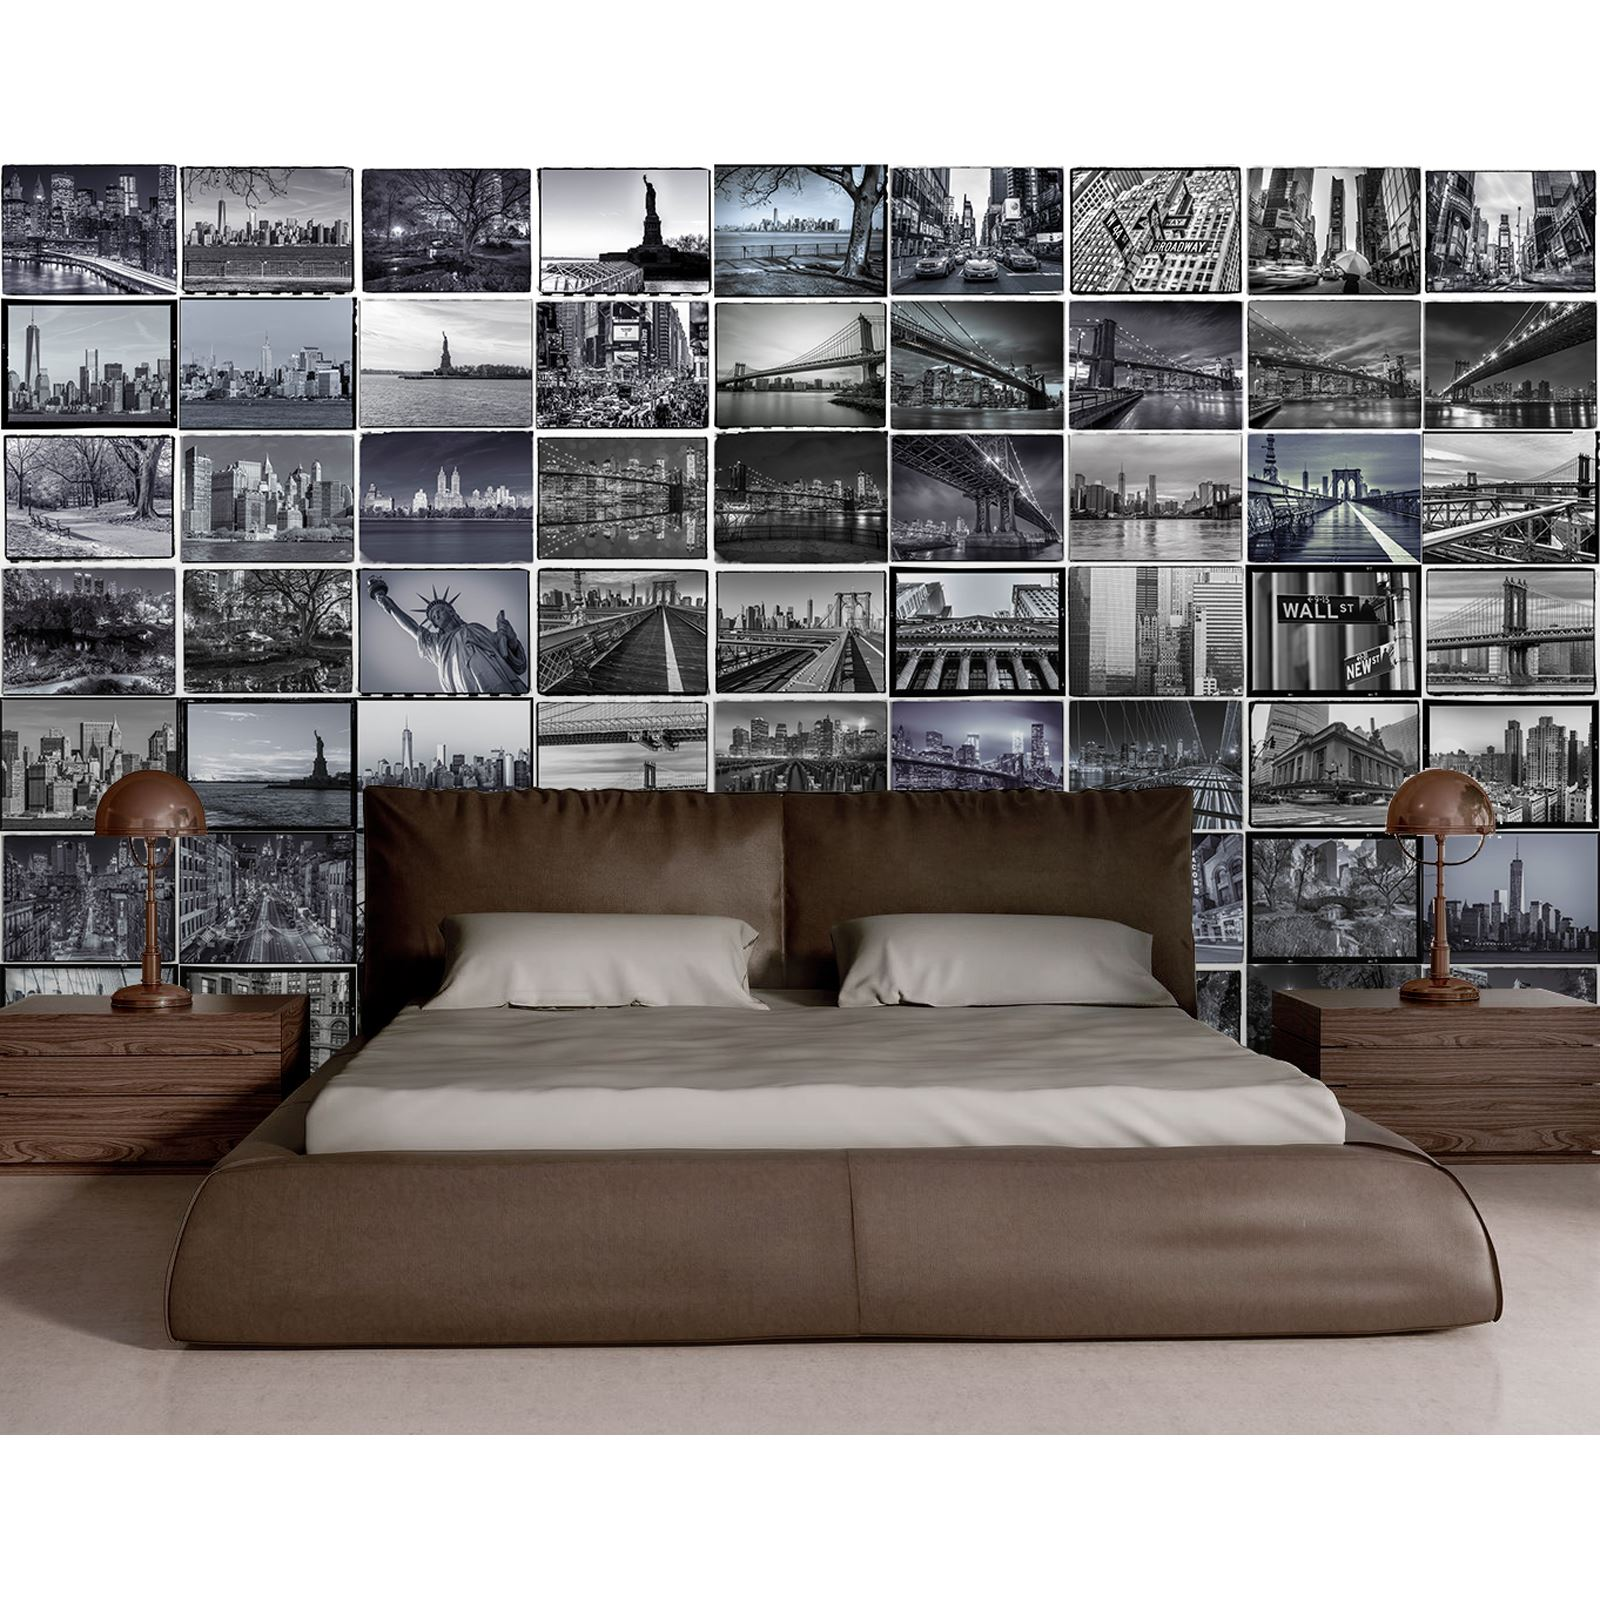 World cities wall murals london paris new york more ebay world cities wall murals london paris new york amipublicfo Choice Image